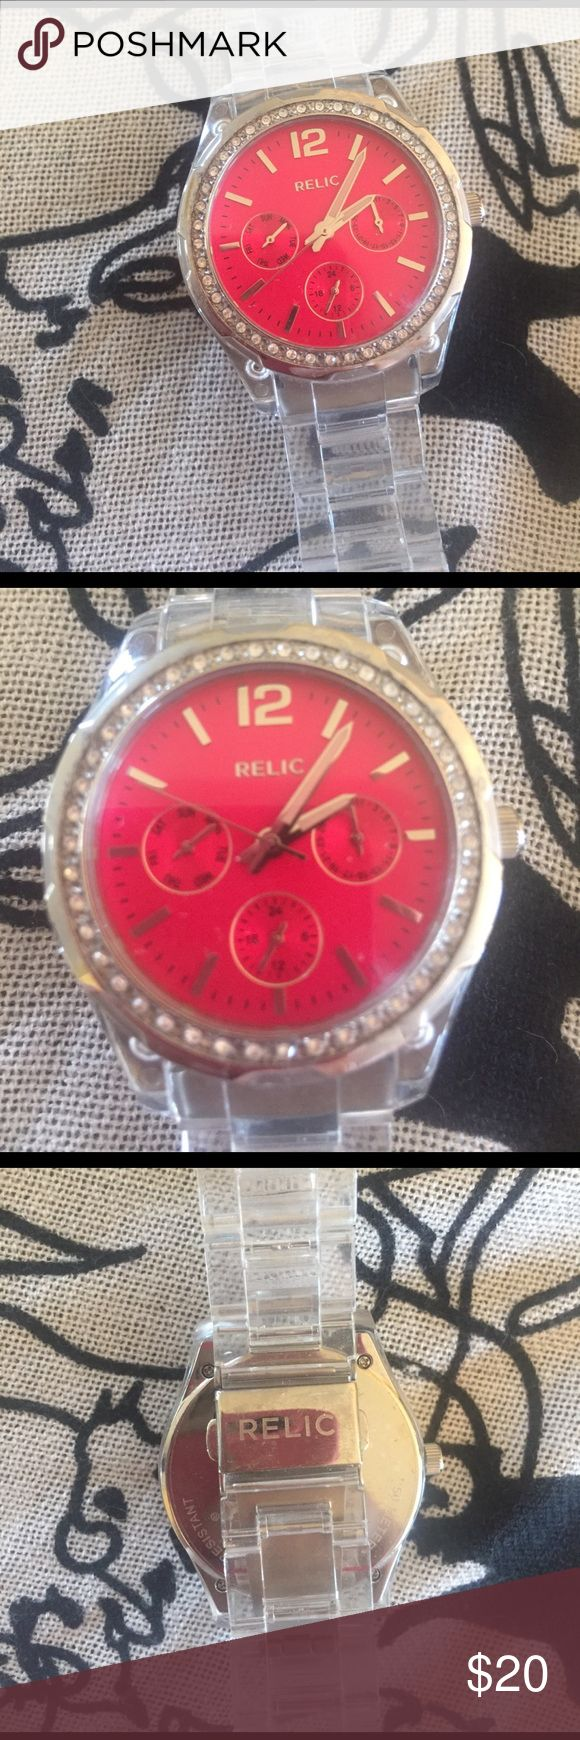 Fossil Relic Watch Adjustable Fossil Accessories Watches